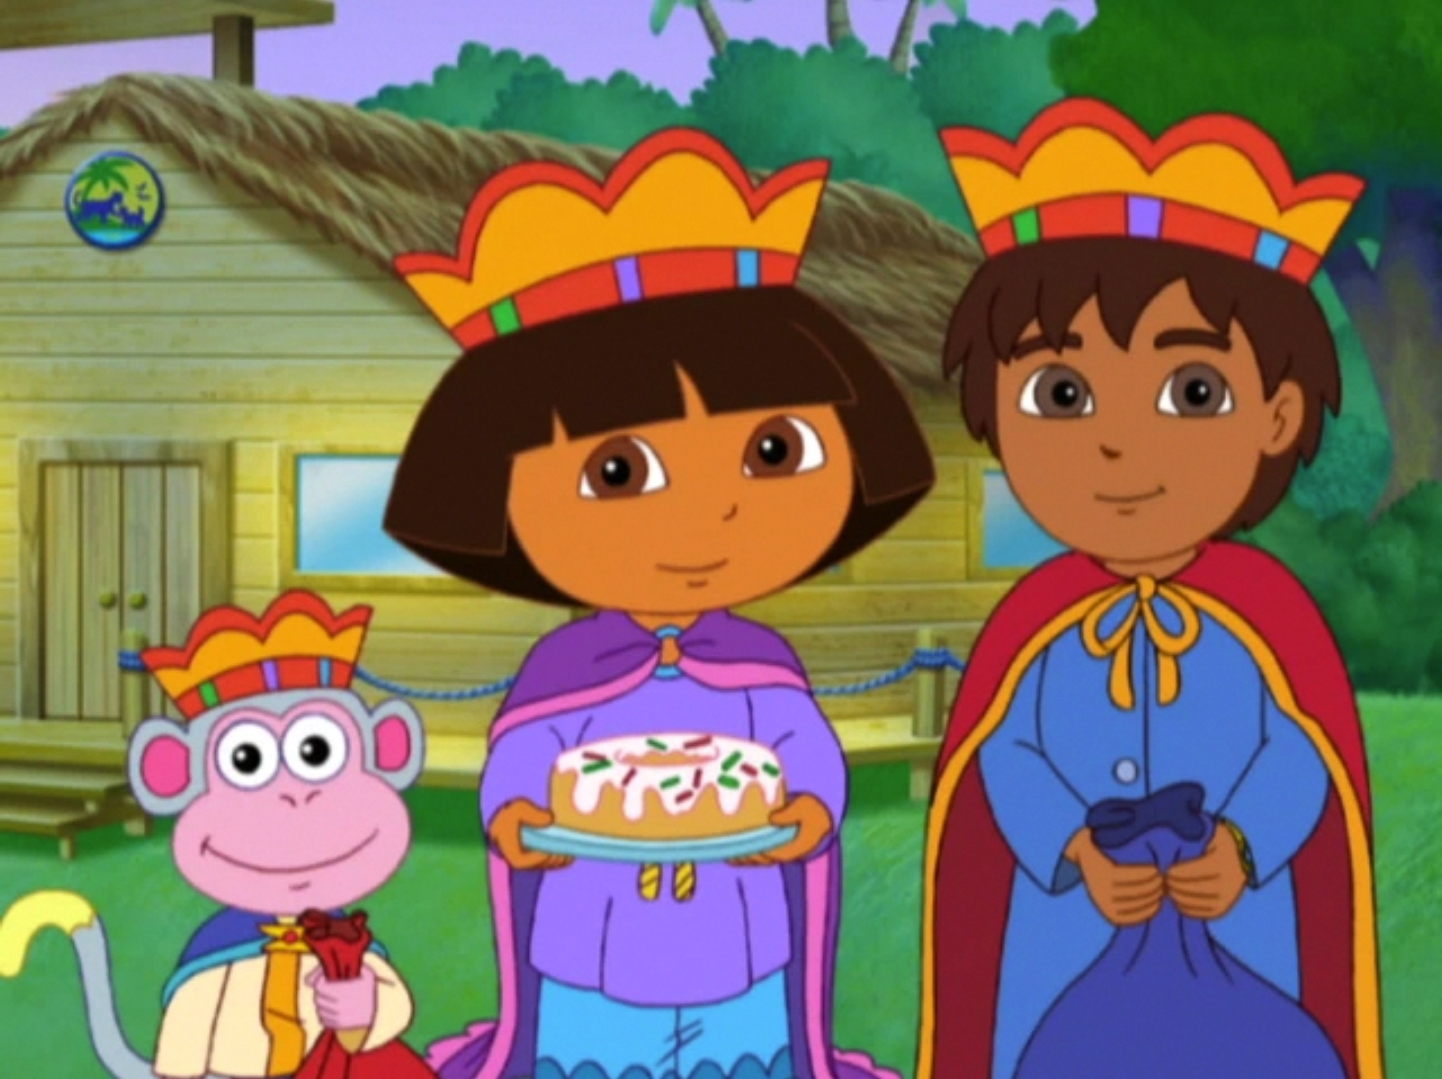 Dora Saves Three Kings Day Dora The Explorer Wiki Fandom Powered